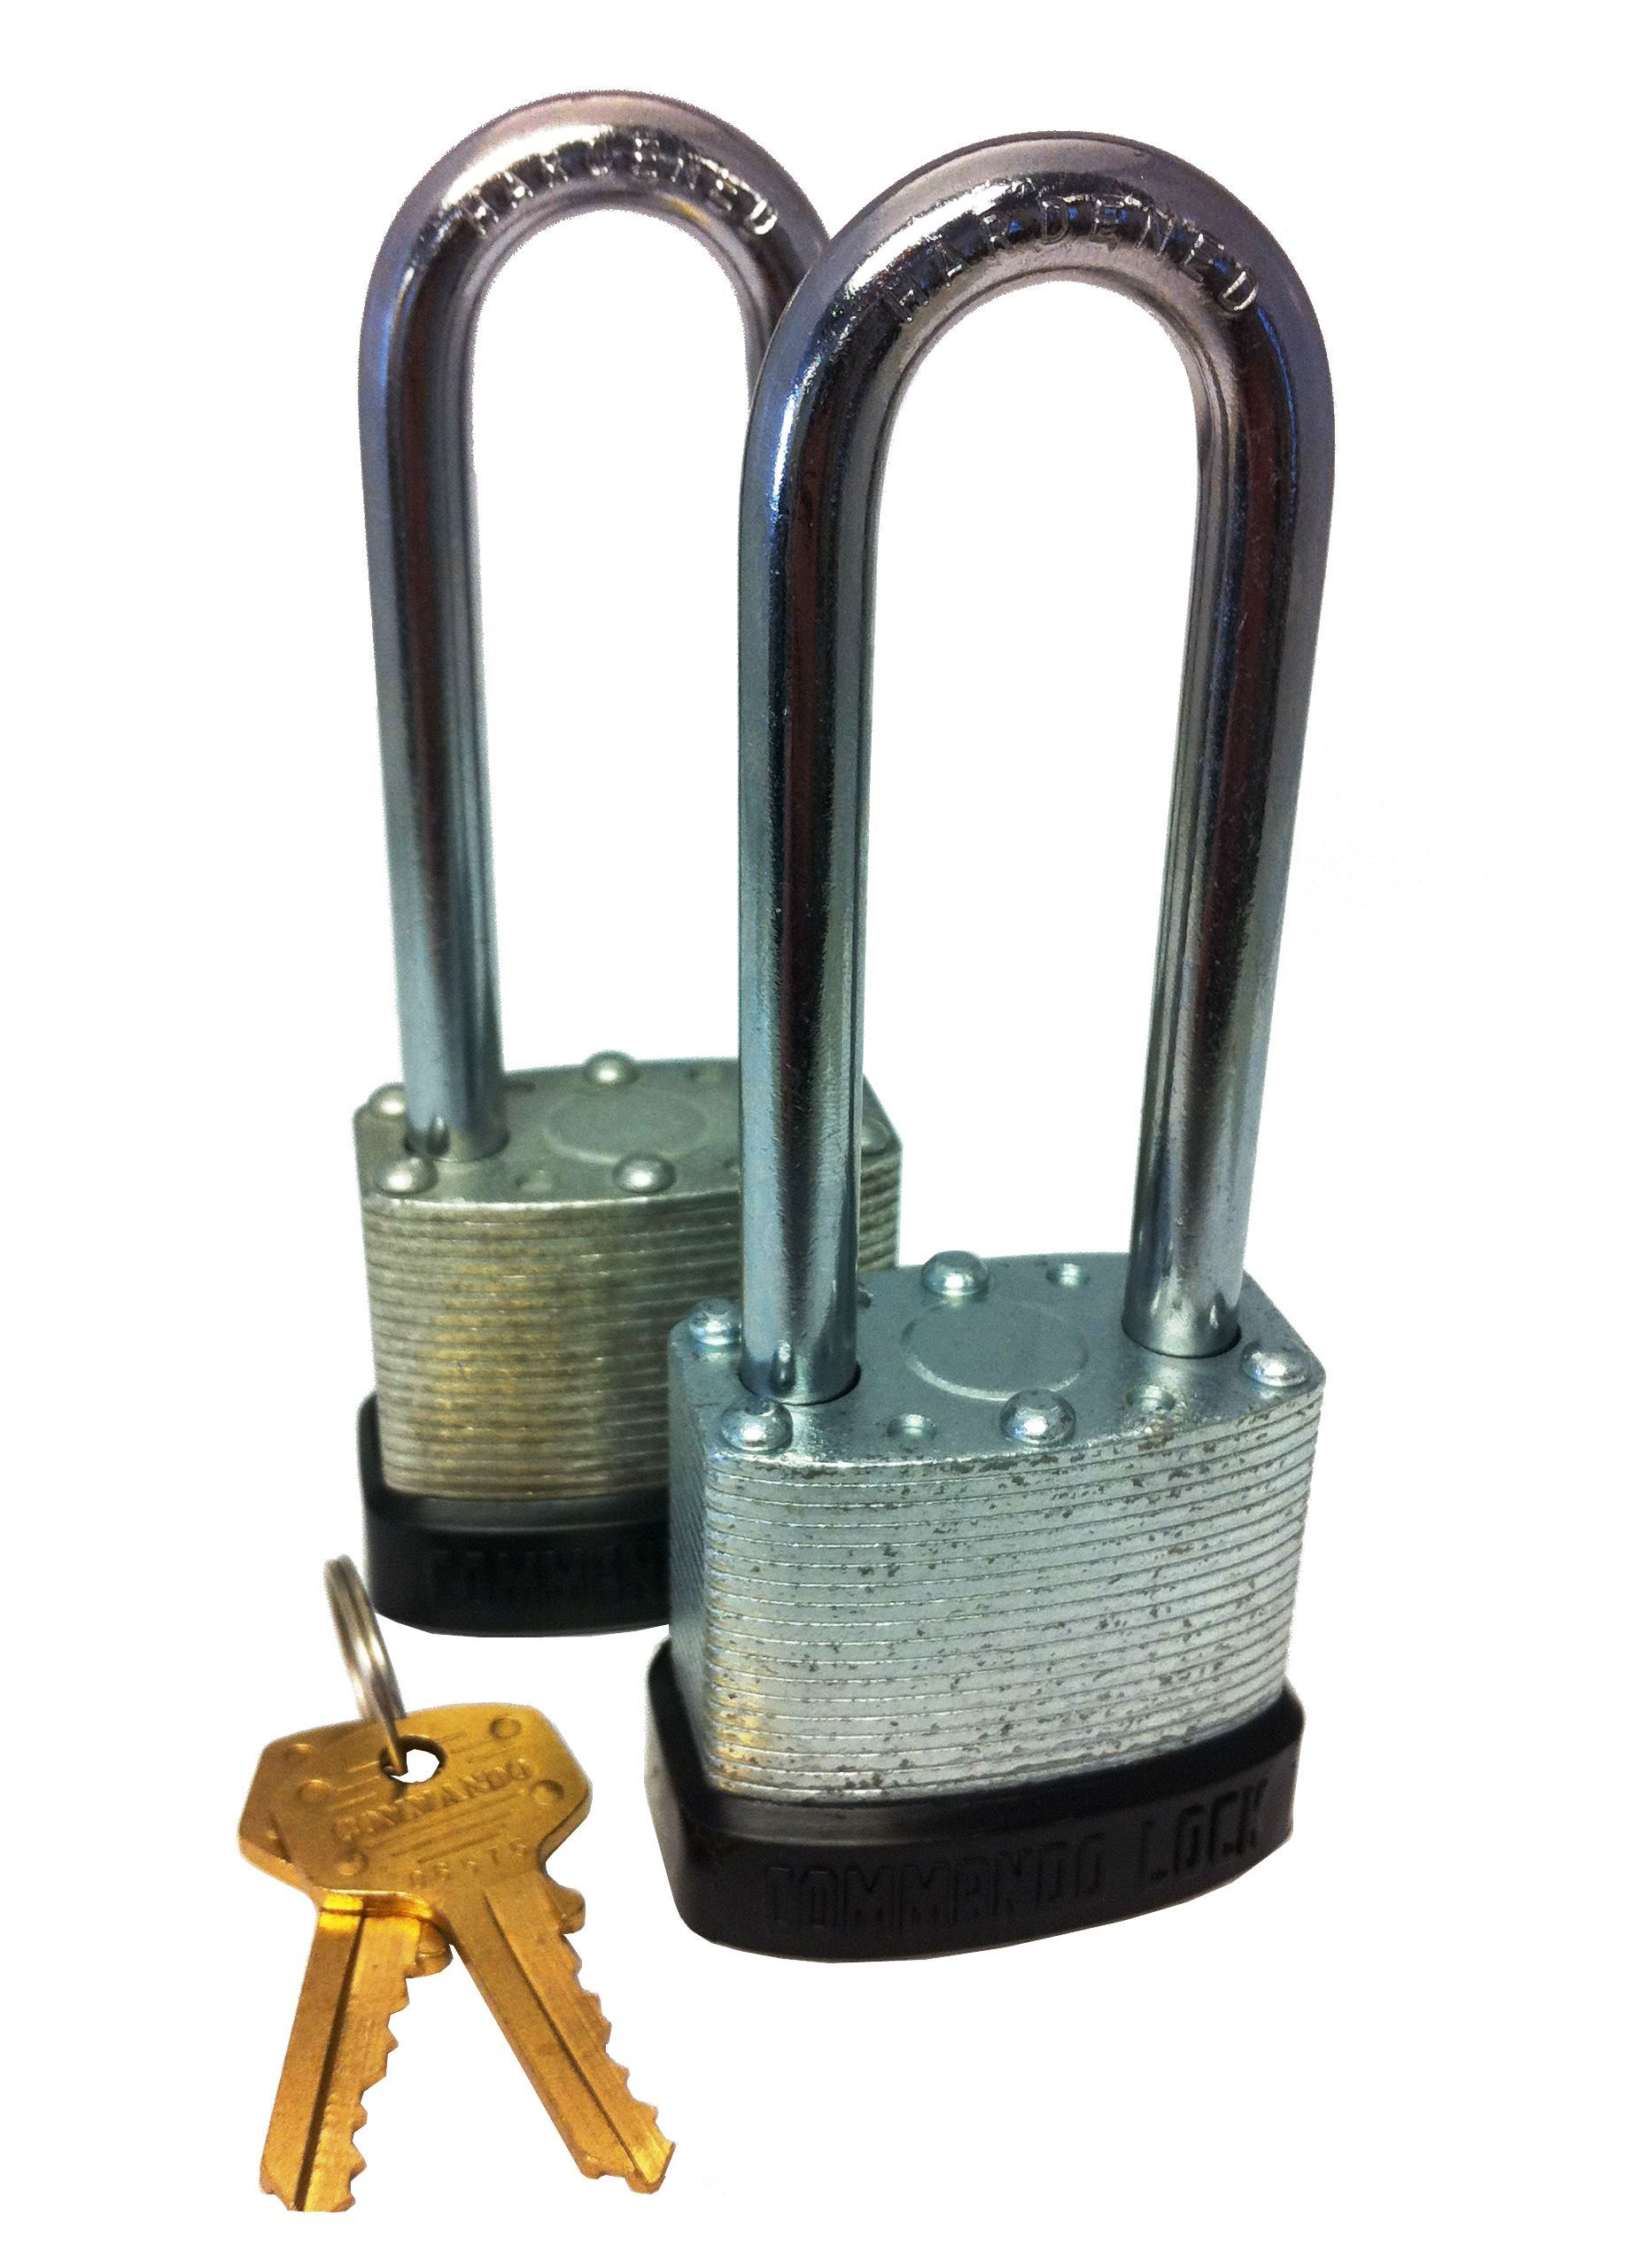 Peacemaker Cz Commercial Truck Locks Keyed Alike Based On Our Popular Us Government Nsn Padlocks These Dual Ball Locking Sy Security Tools Locks Key Locks